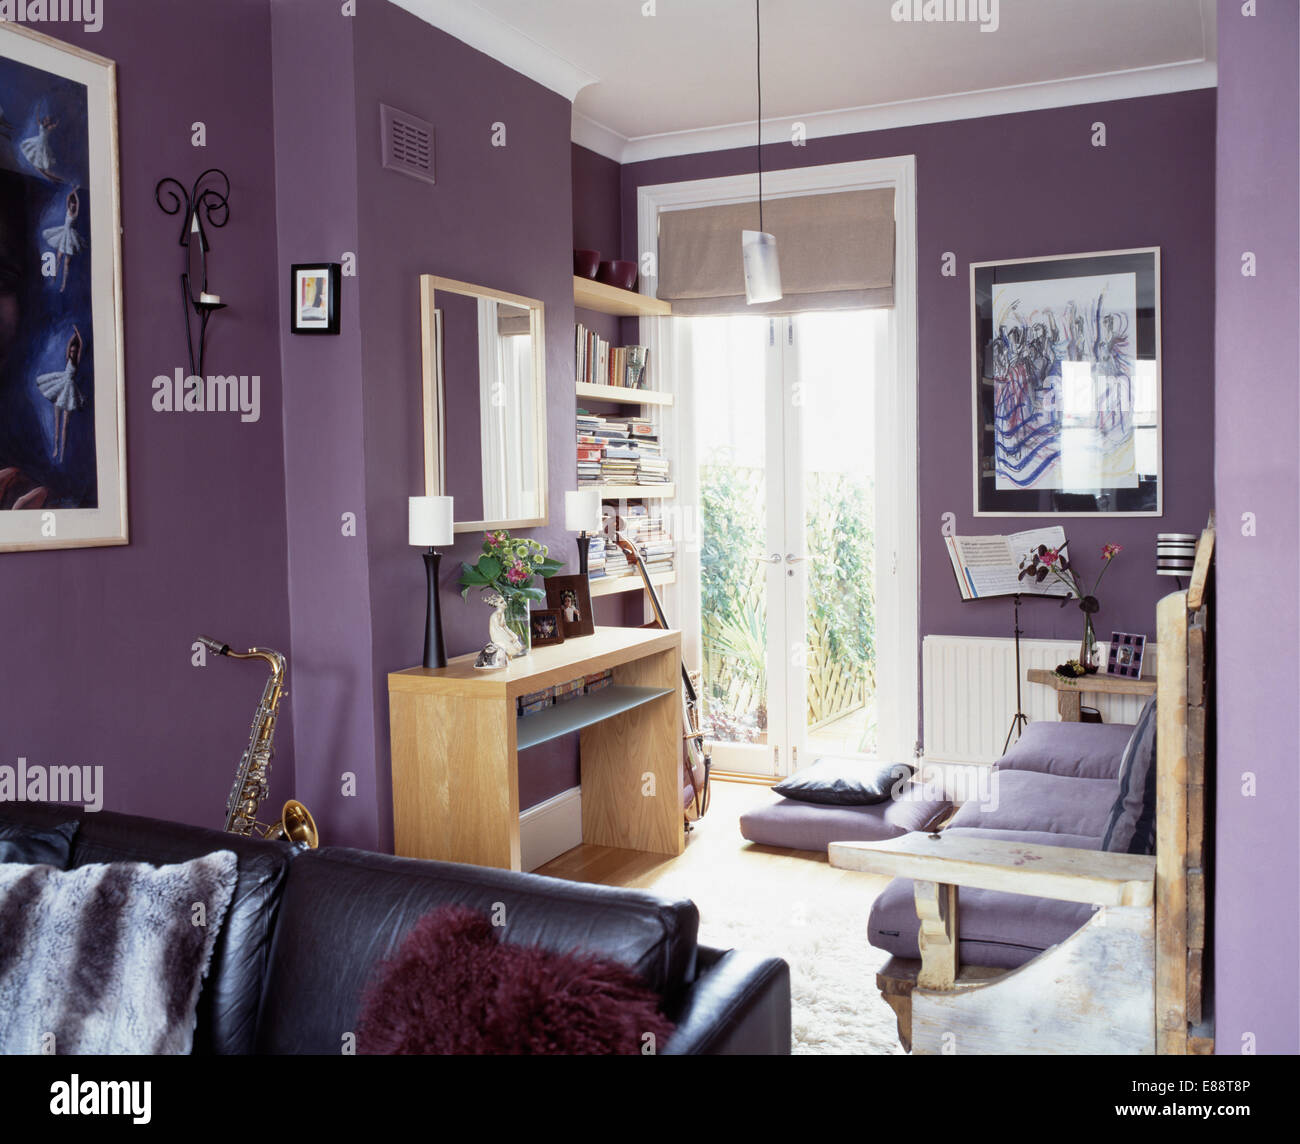 Small Wooden Desk In Modern Purple Living Room With French Windows